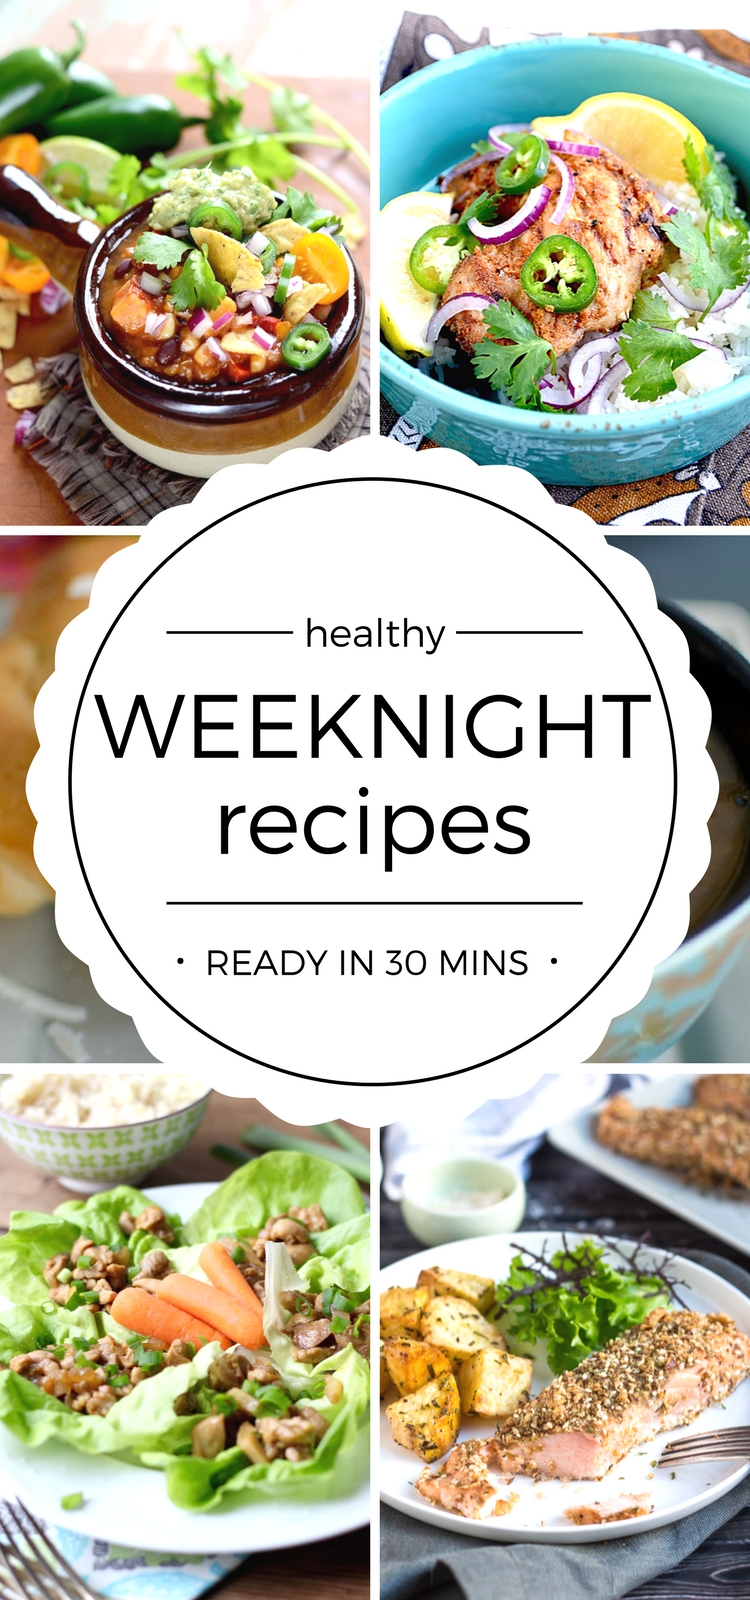 Easy weeknight healthy recipes for family